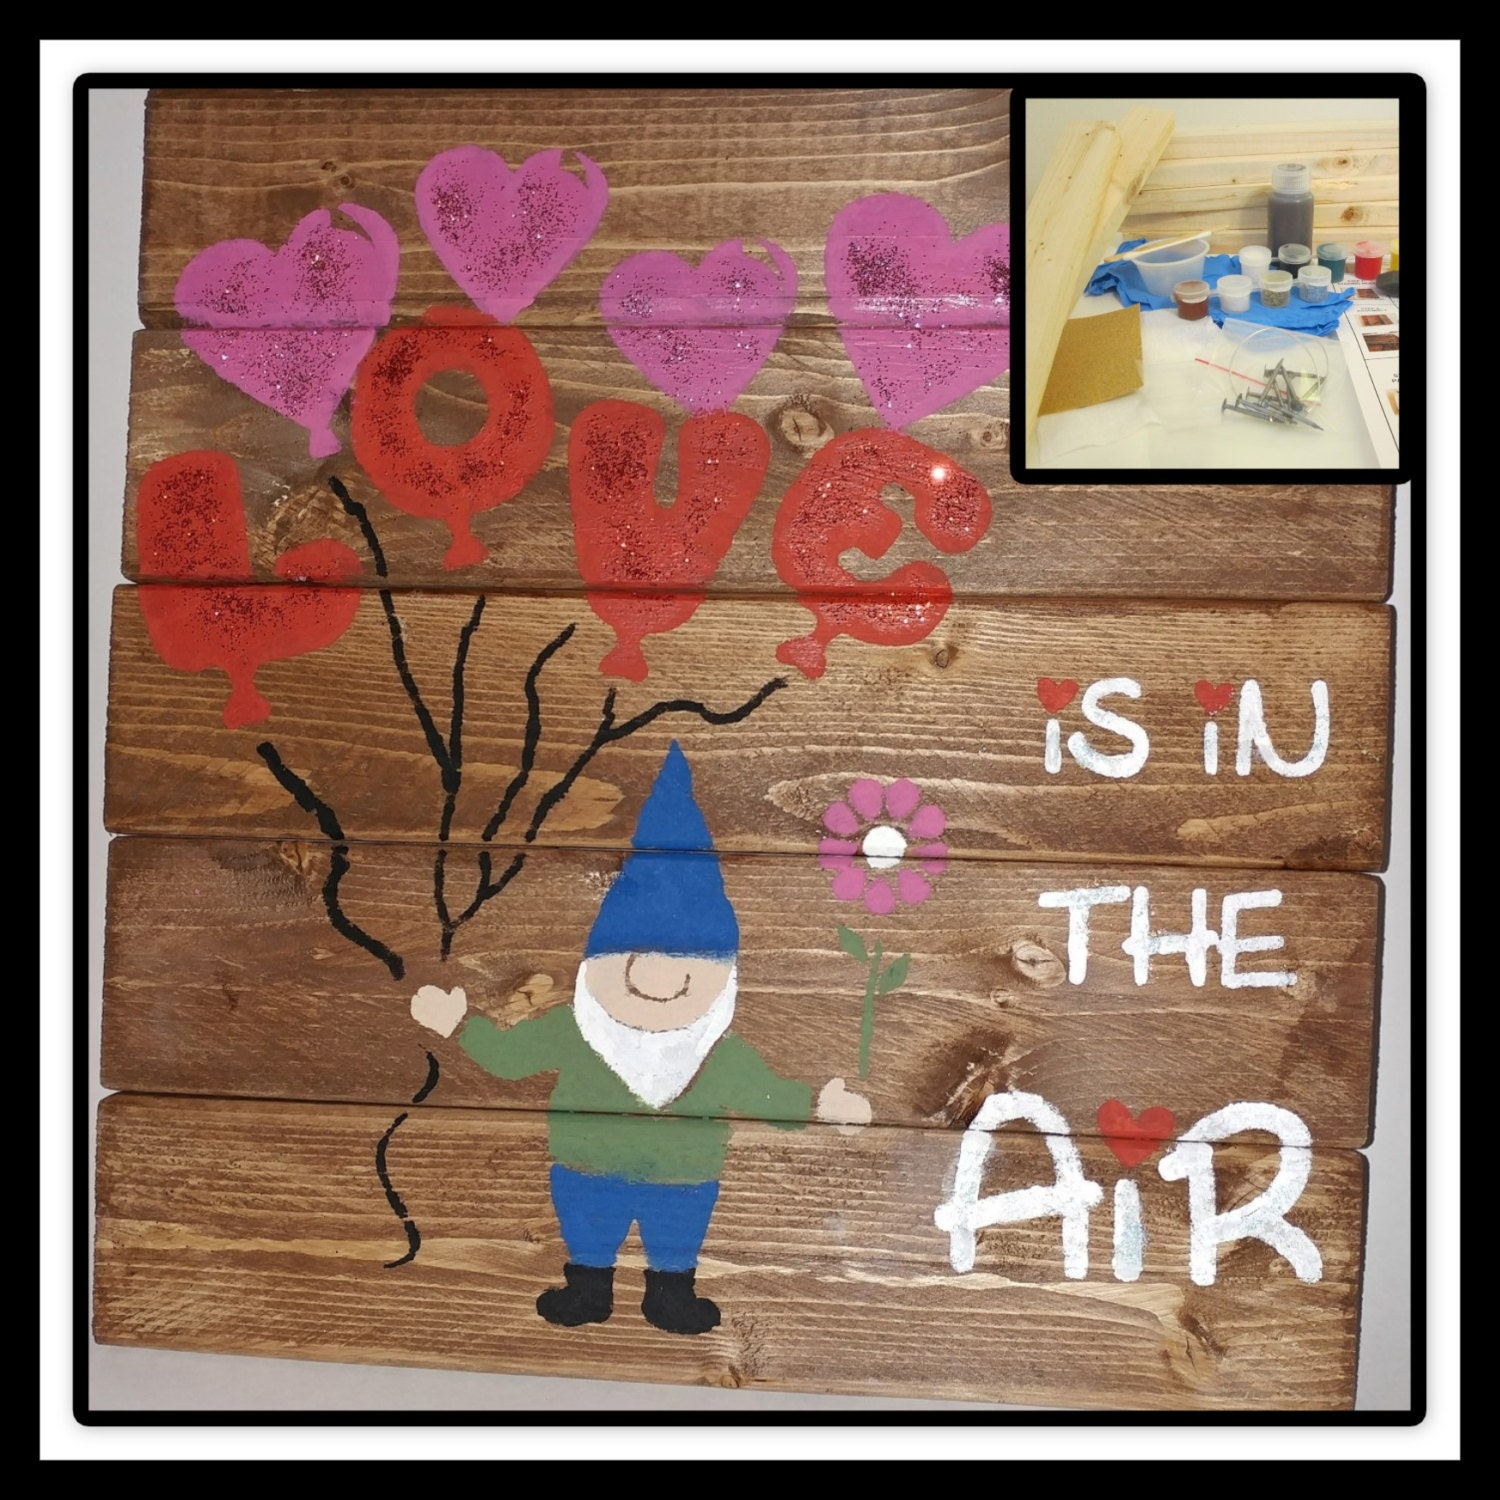 Craft Kit Diy Home Decor Craft Project Love In The Air Board Sign Craft Kit Make Your